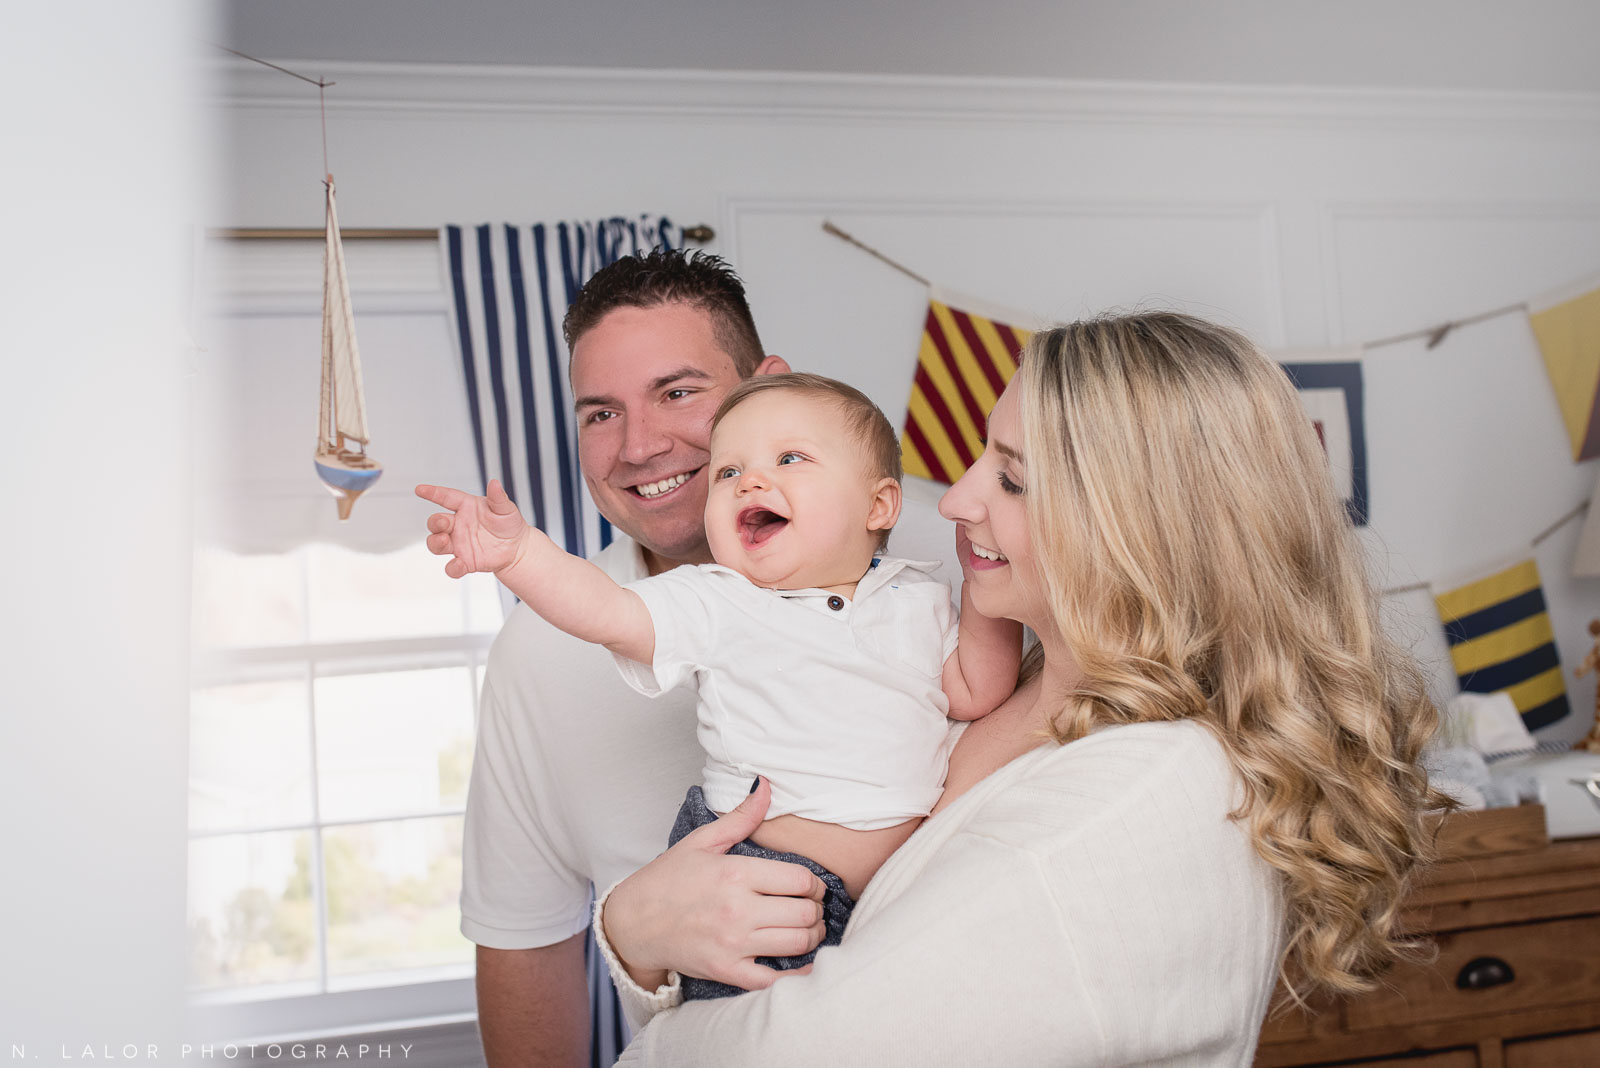 Parents holding their baby boy as he plays with a boat mobile above his crib. Image by N. Lalor Photography.